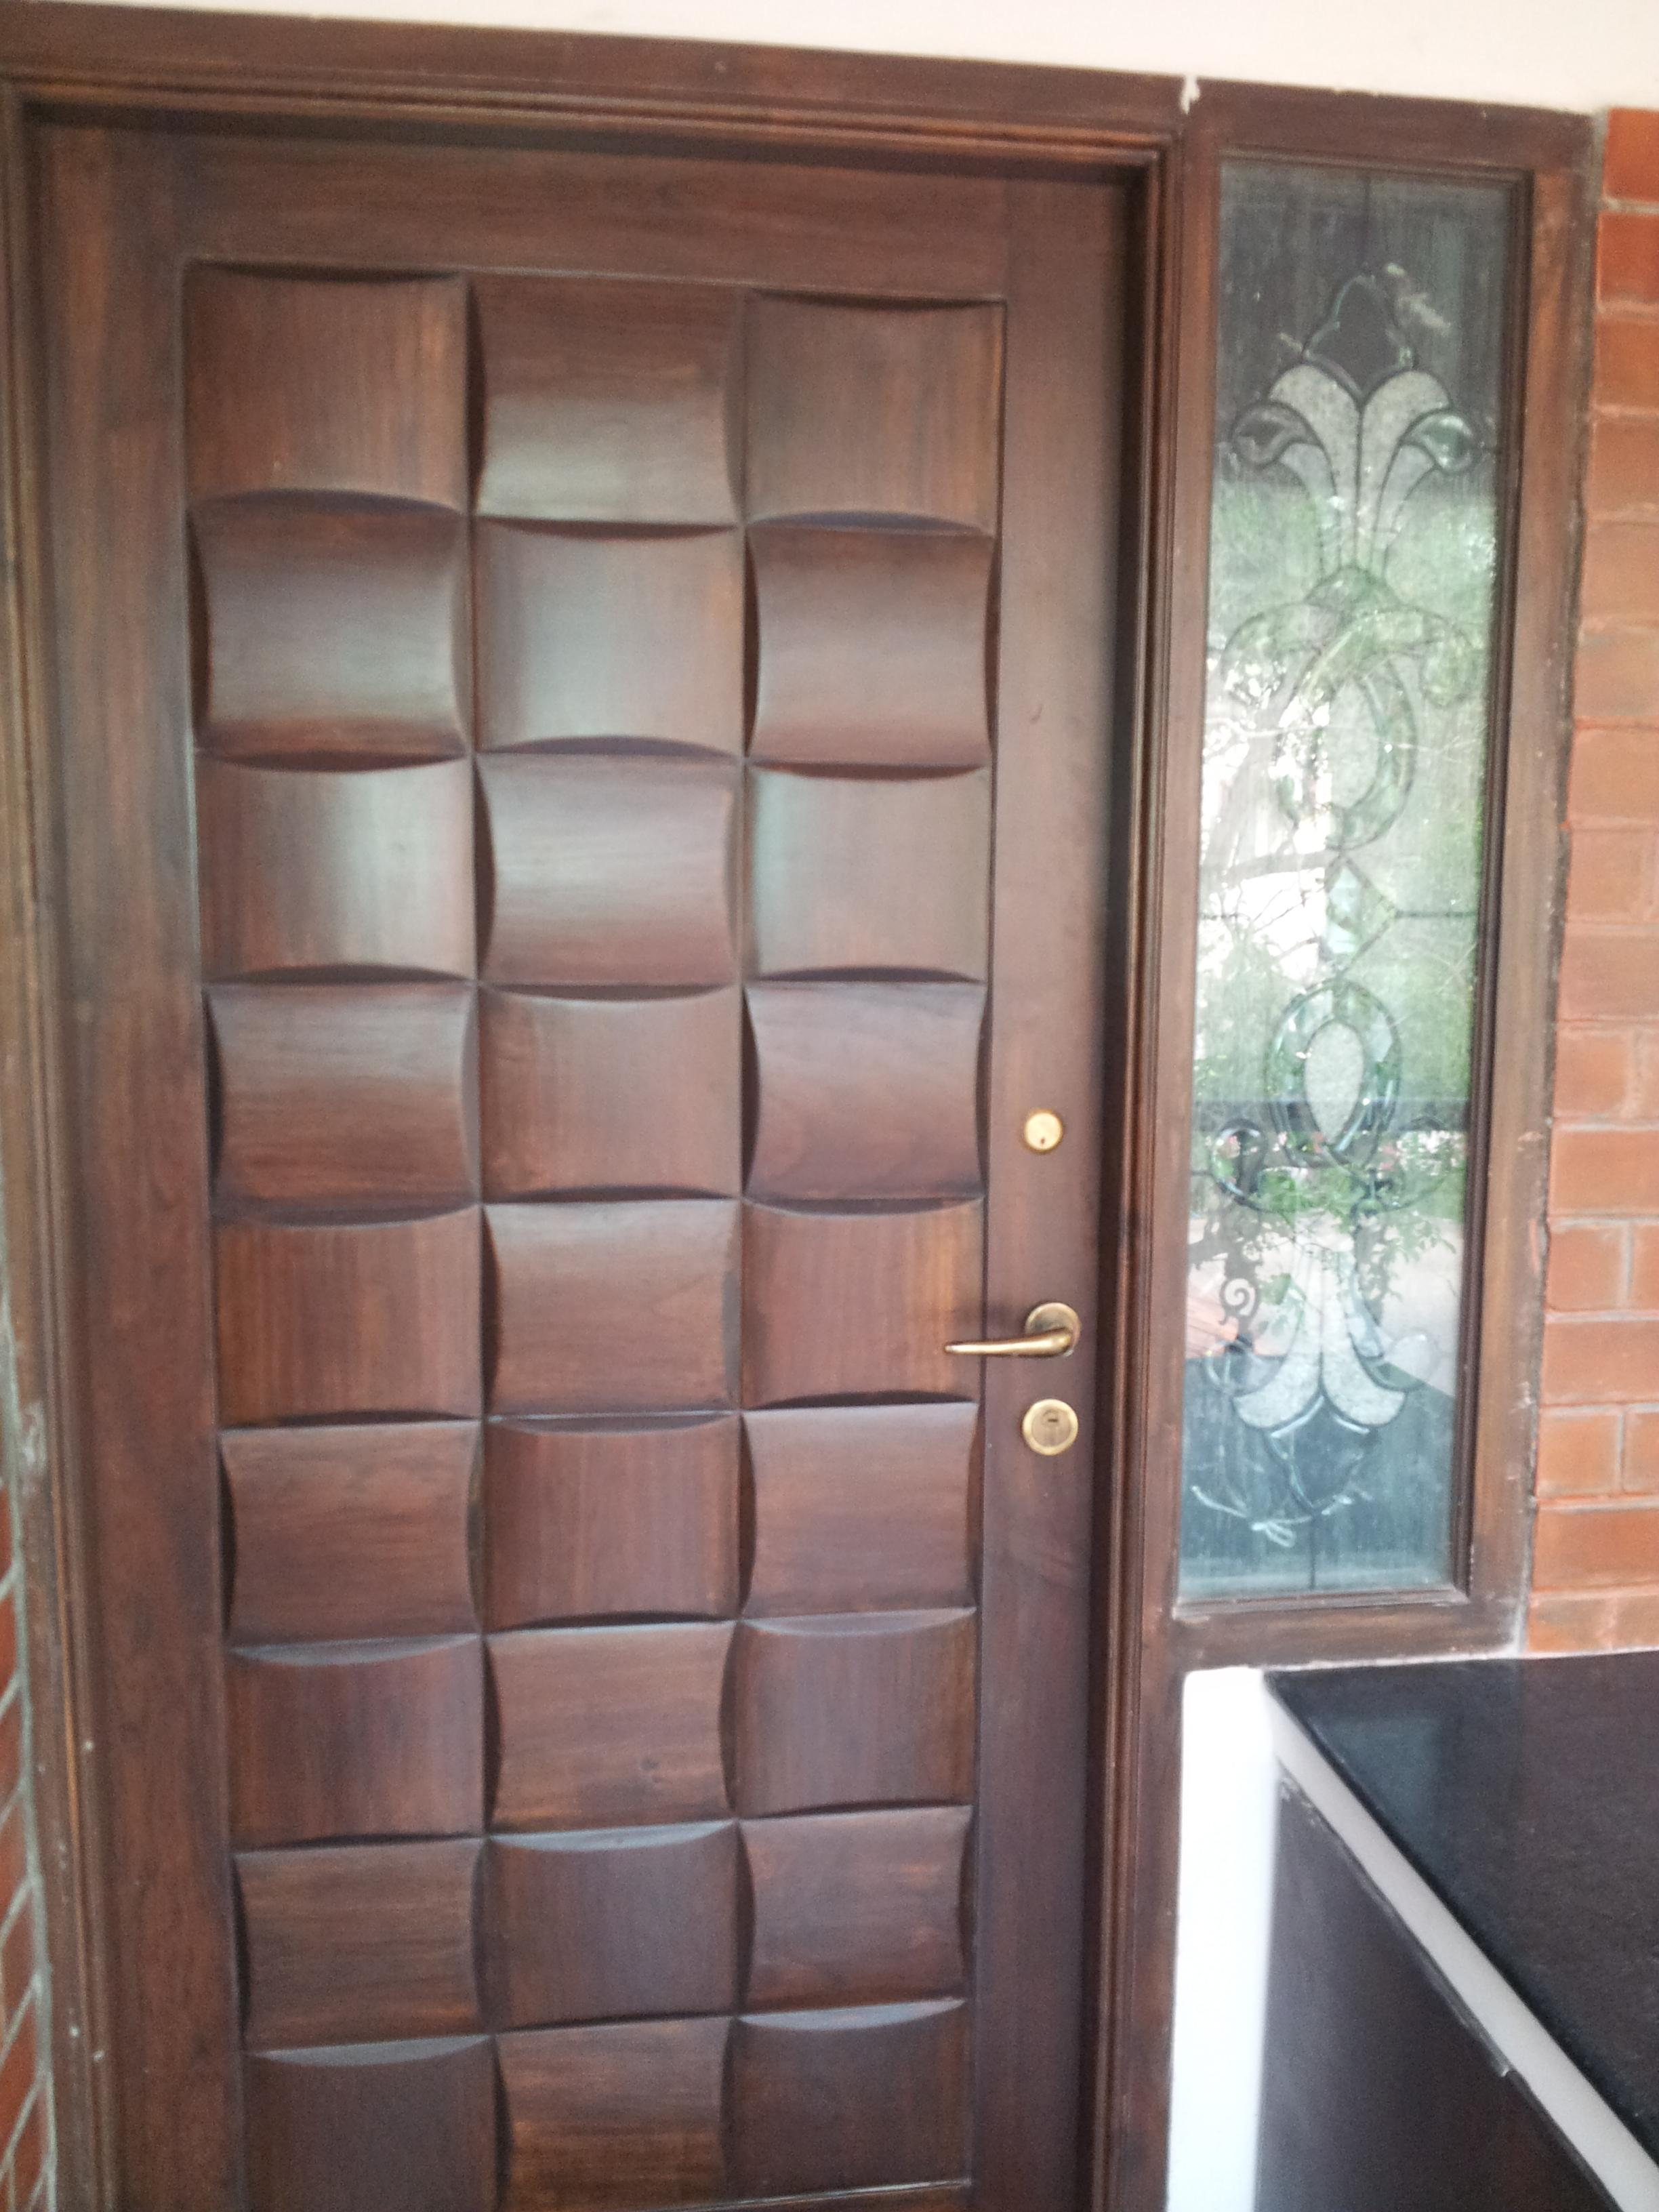 Main door design in wood very popular in 2013 gharexpert for New main door design